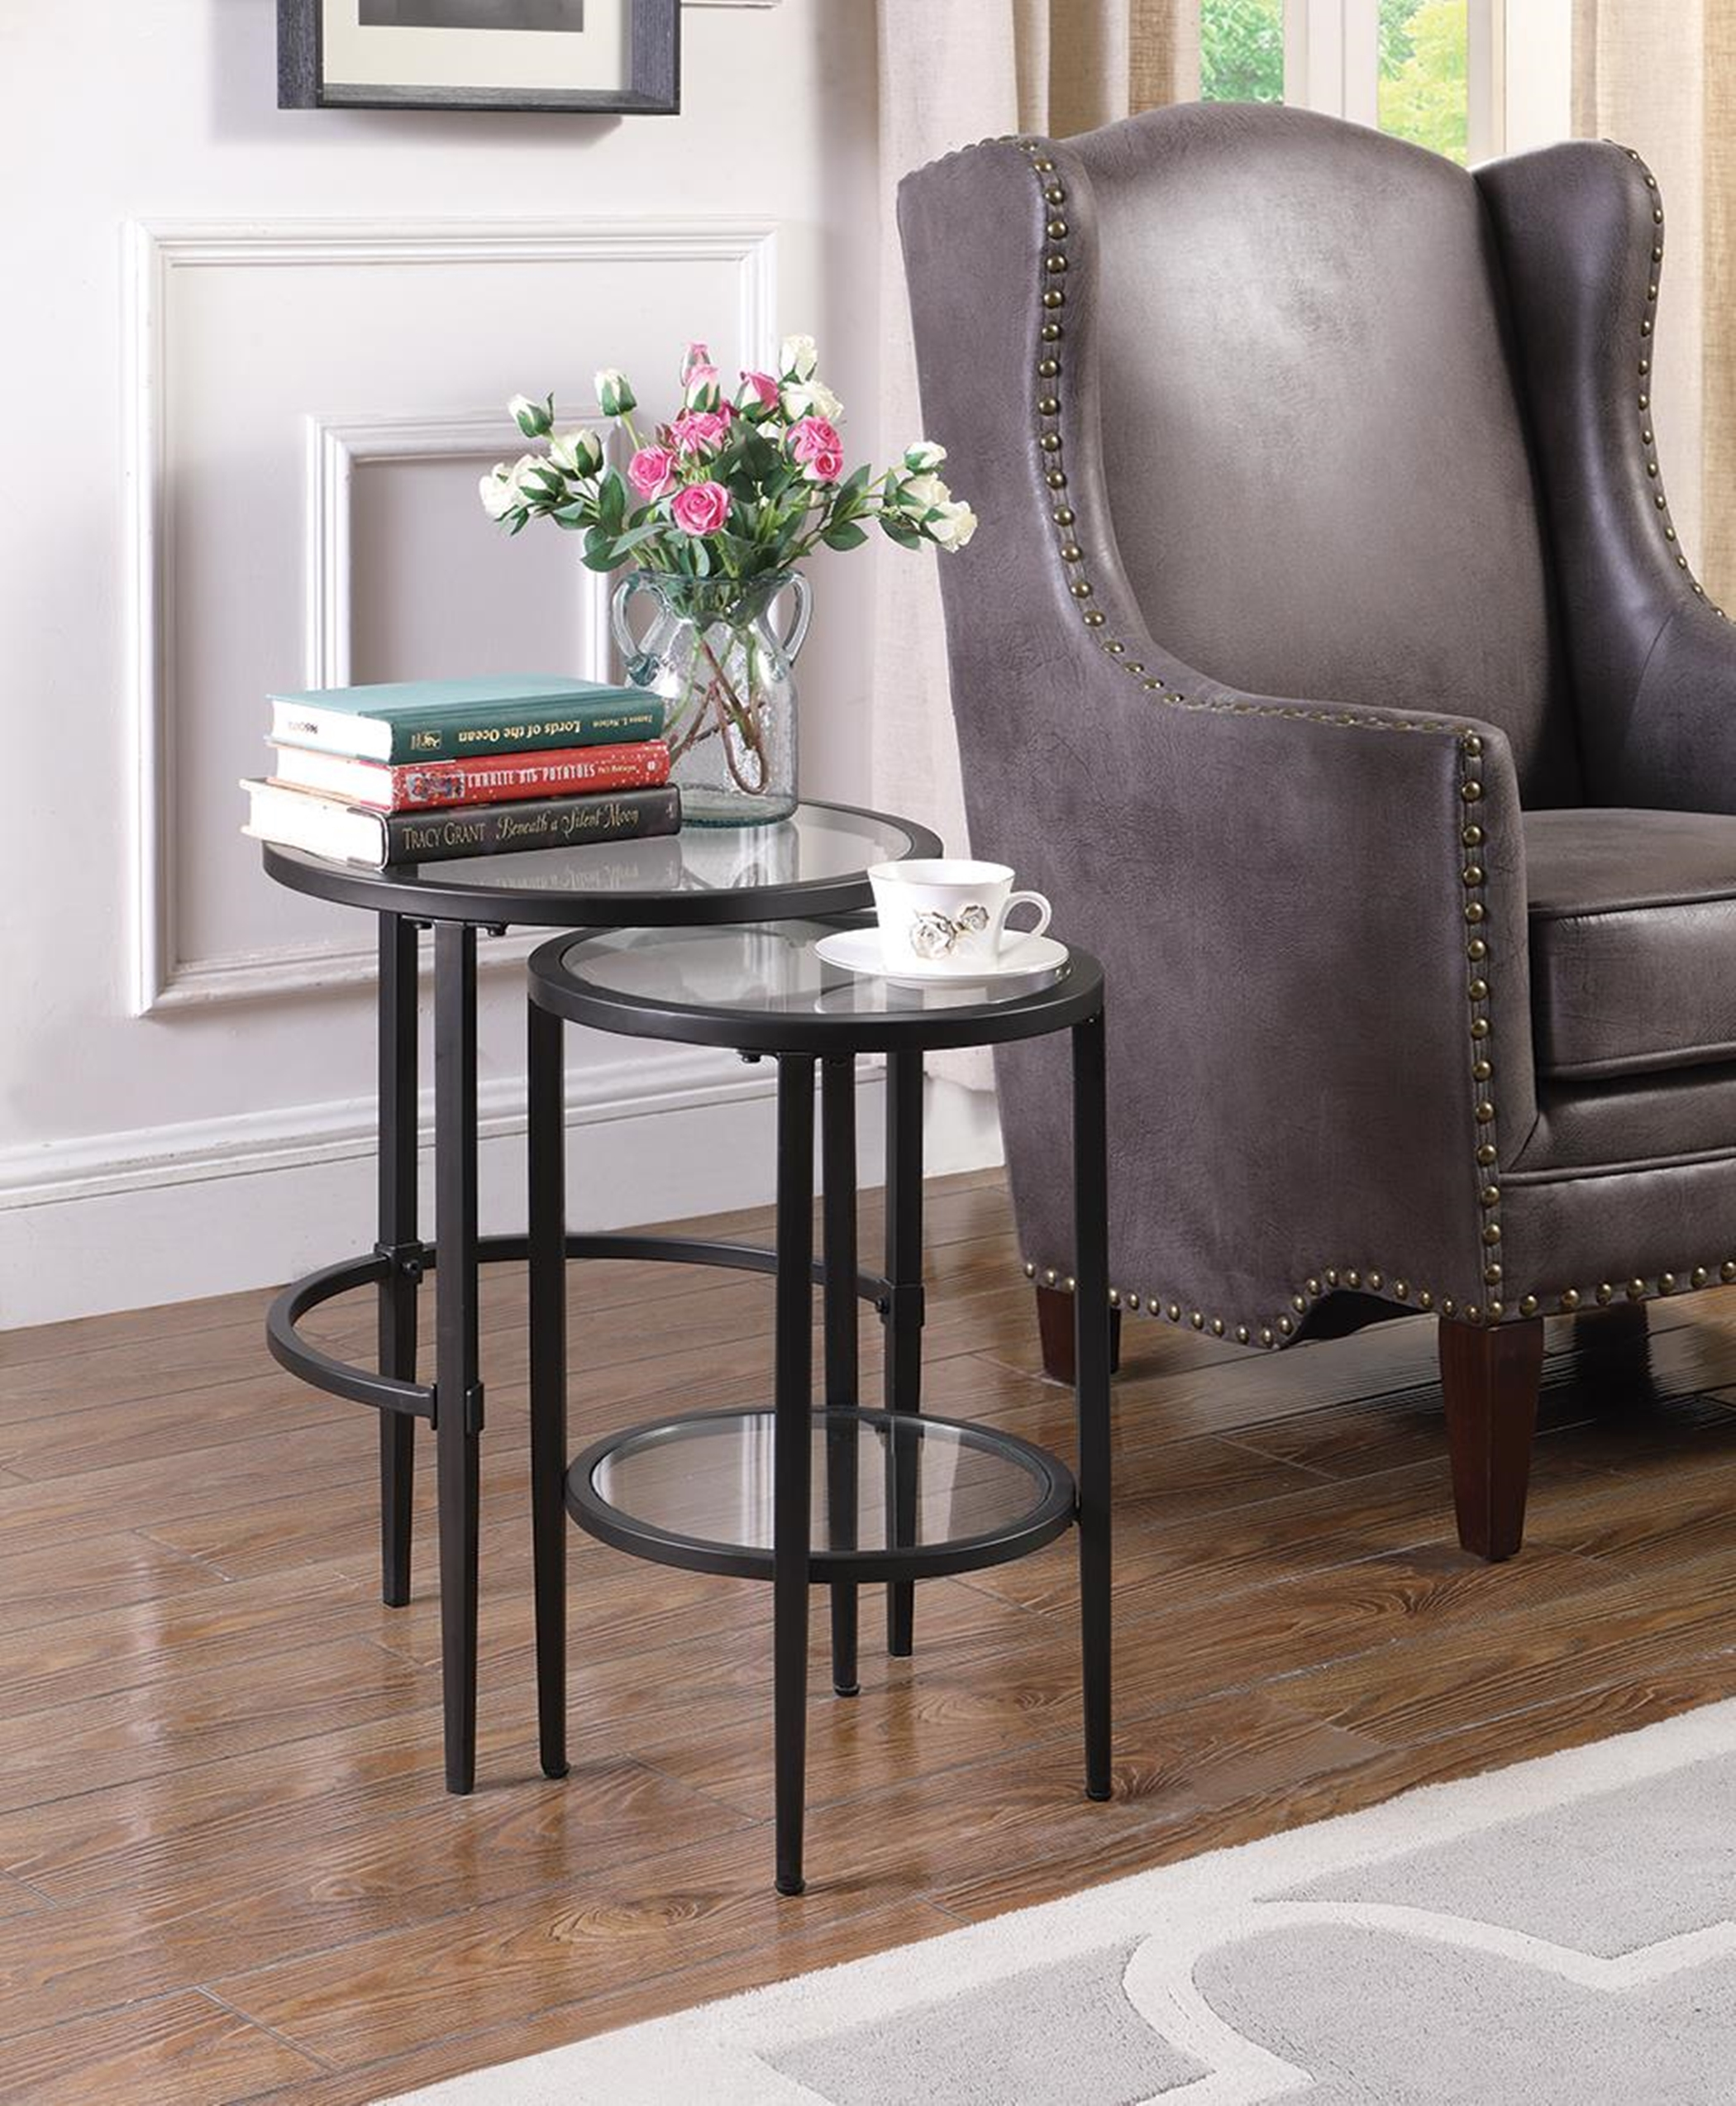 Matte Black Nesting Table